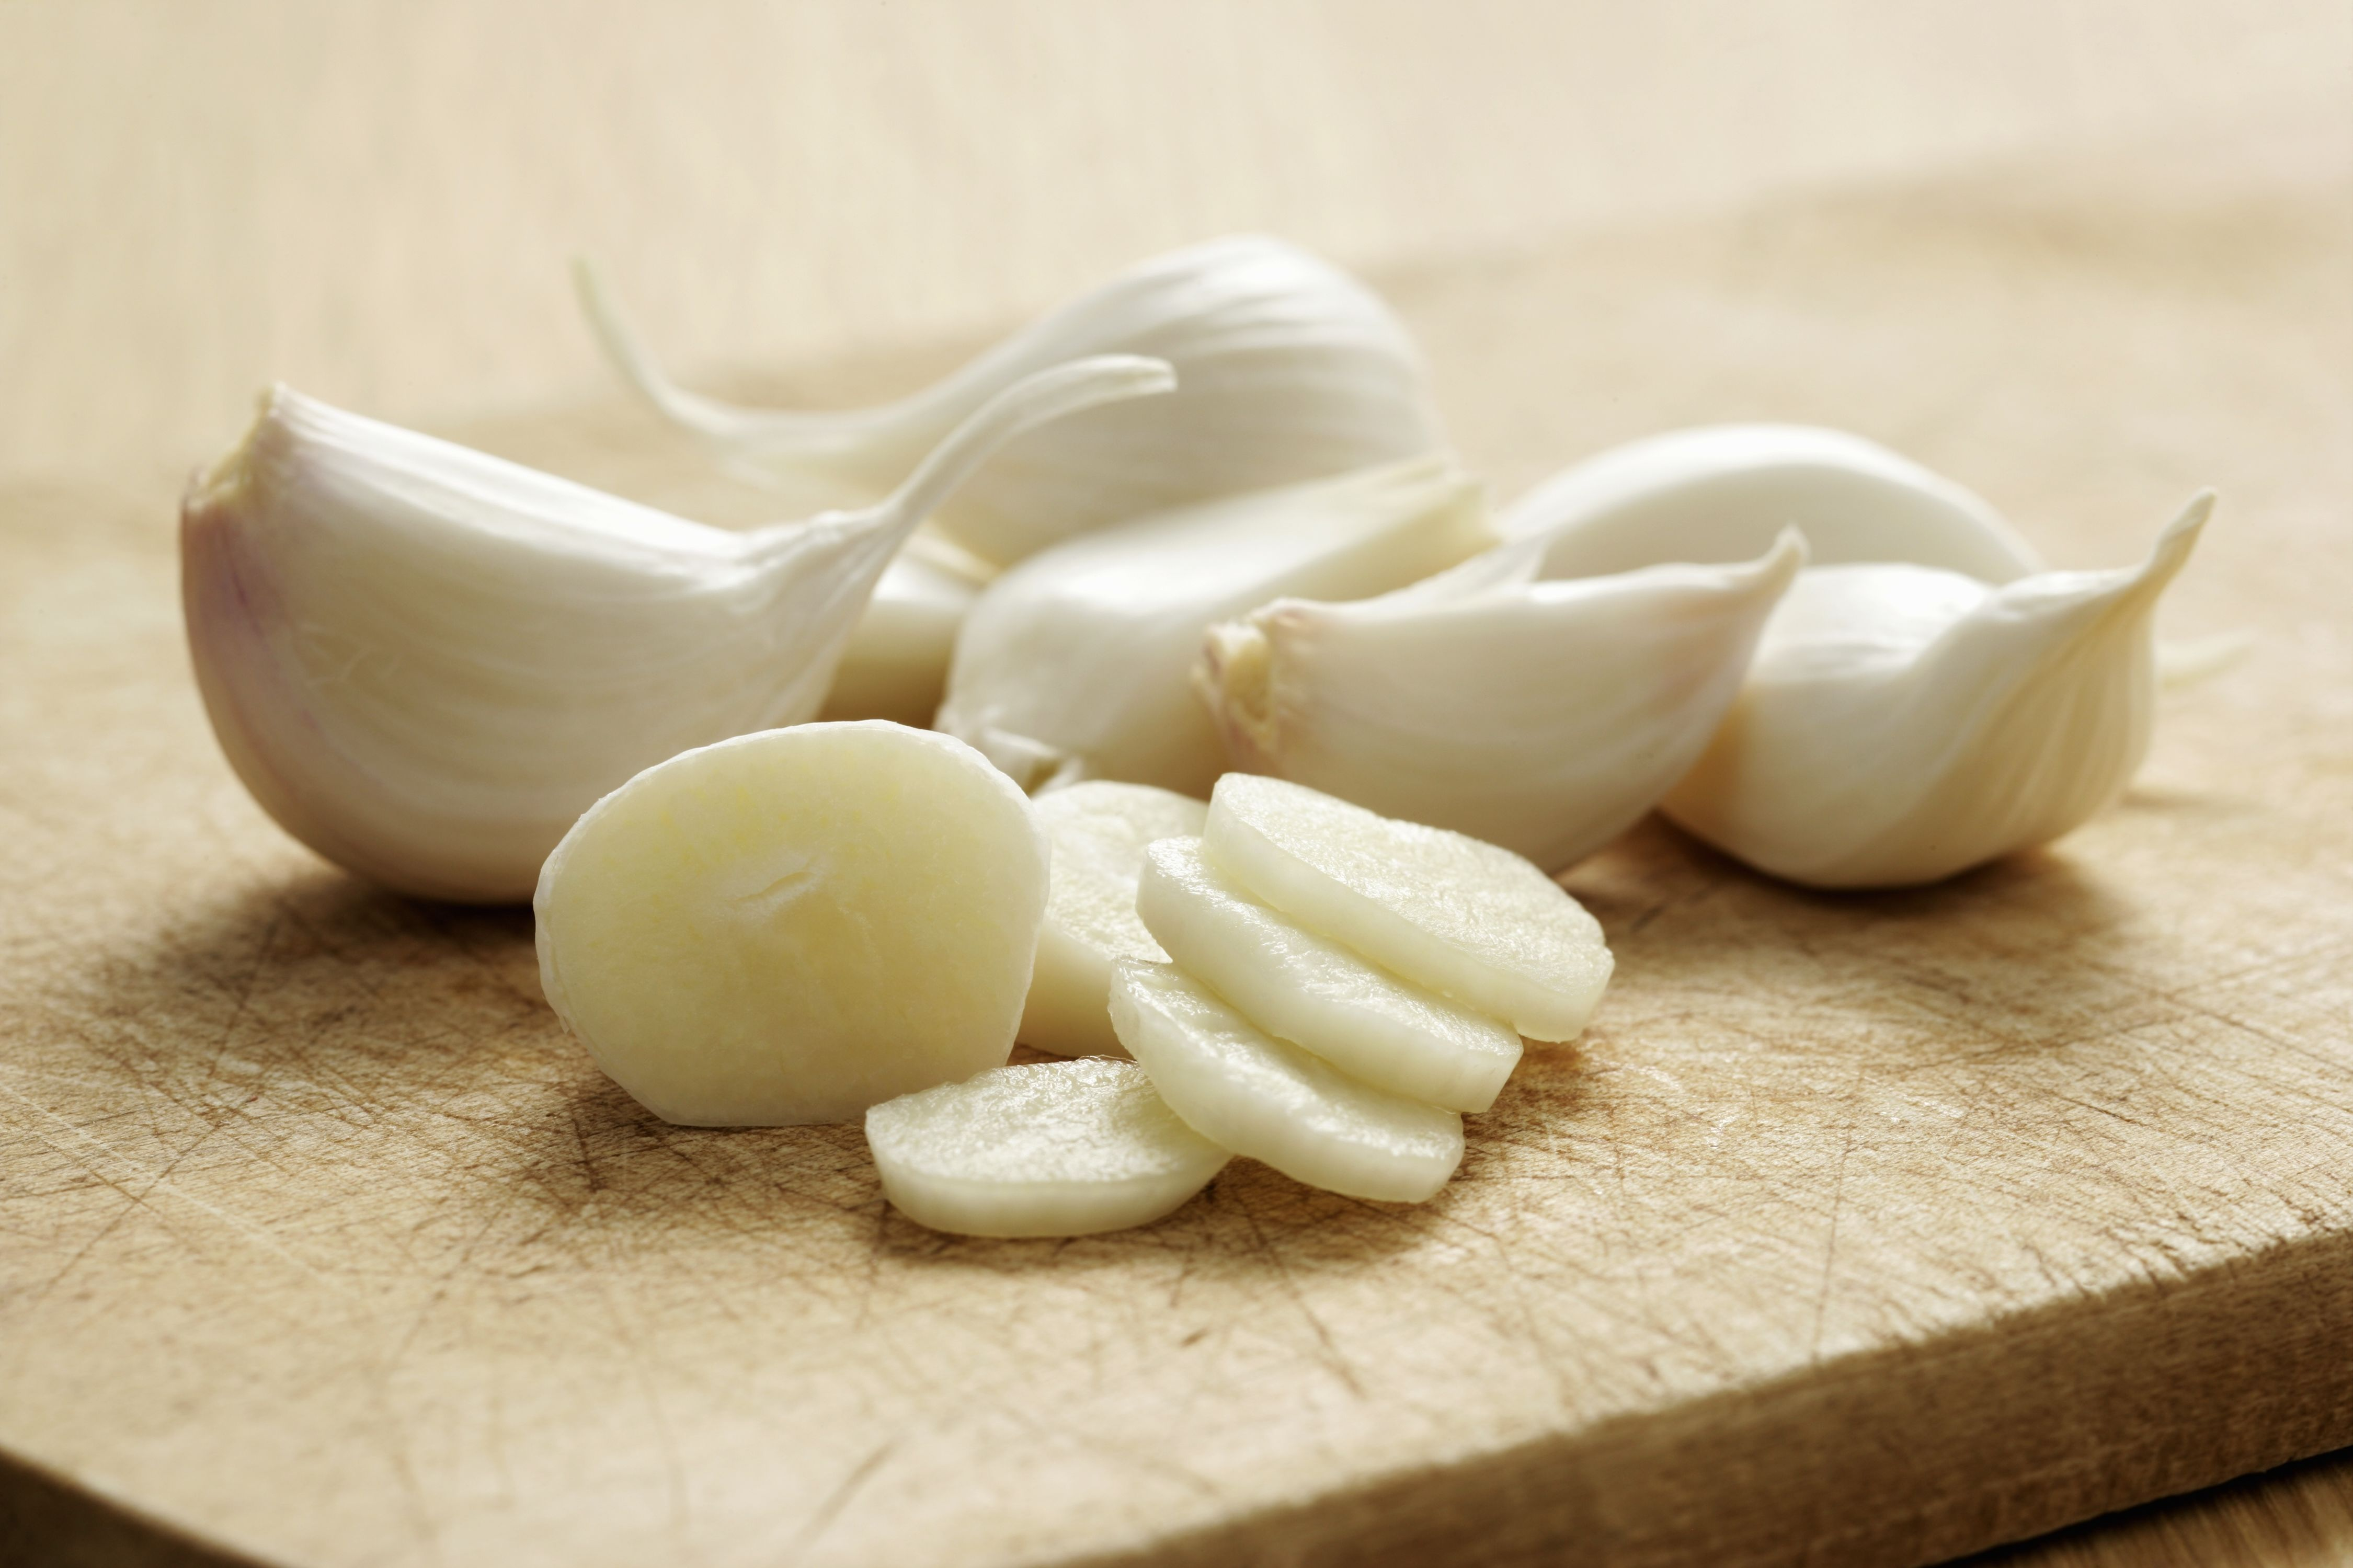 New Research Finds Eating Garlic Could Protect Memory